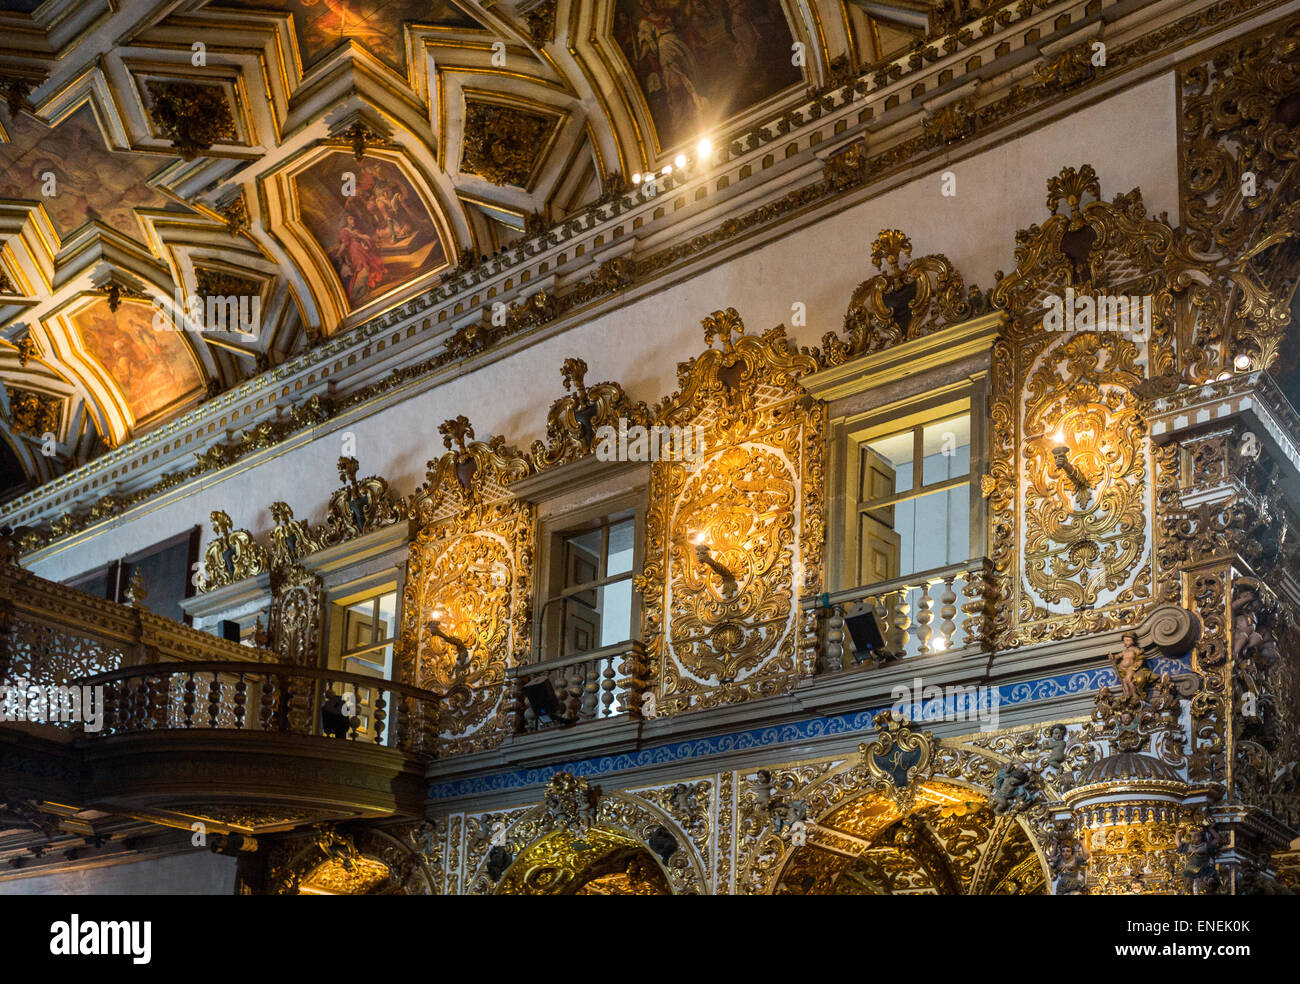 Brazil, Salvador, statues of saints and gold decorations in the St. Francisco church - Stock Image